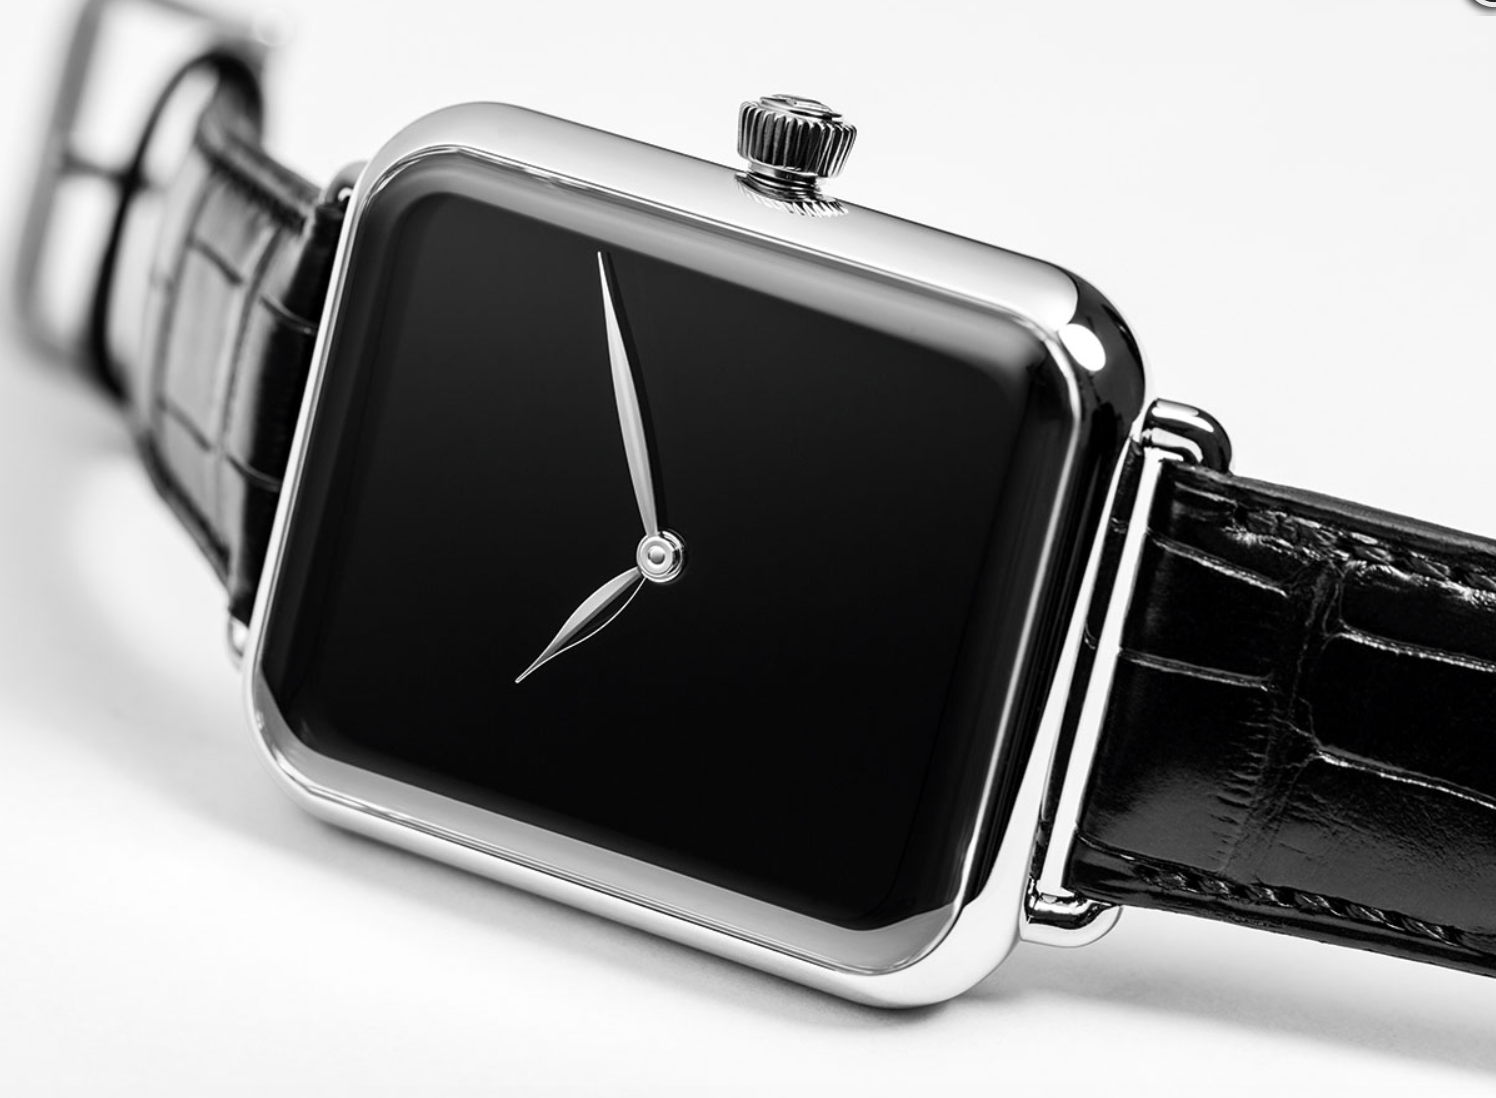 Swiss Alp Watch Zzzz Resembles Apple Watch at First Glance